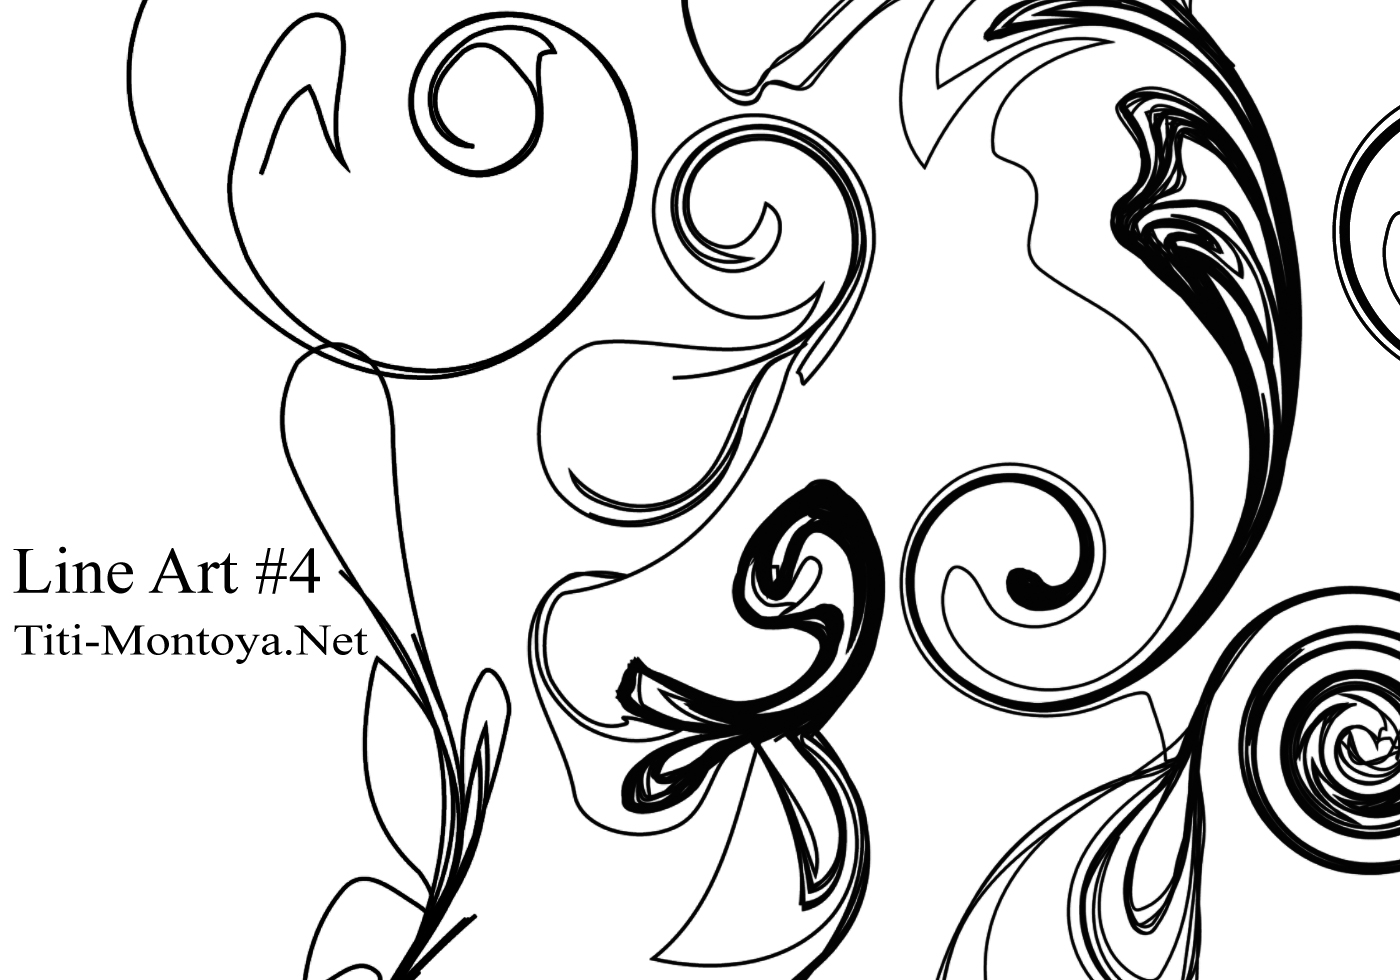 Line Art Brushes Photo : Line art free photoshop brushes at brusheezy